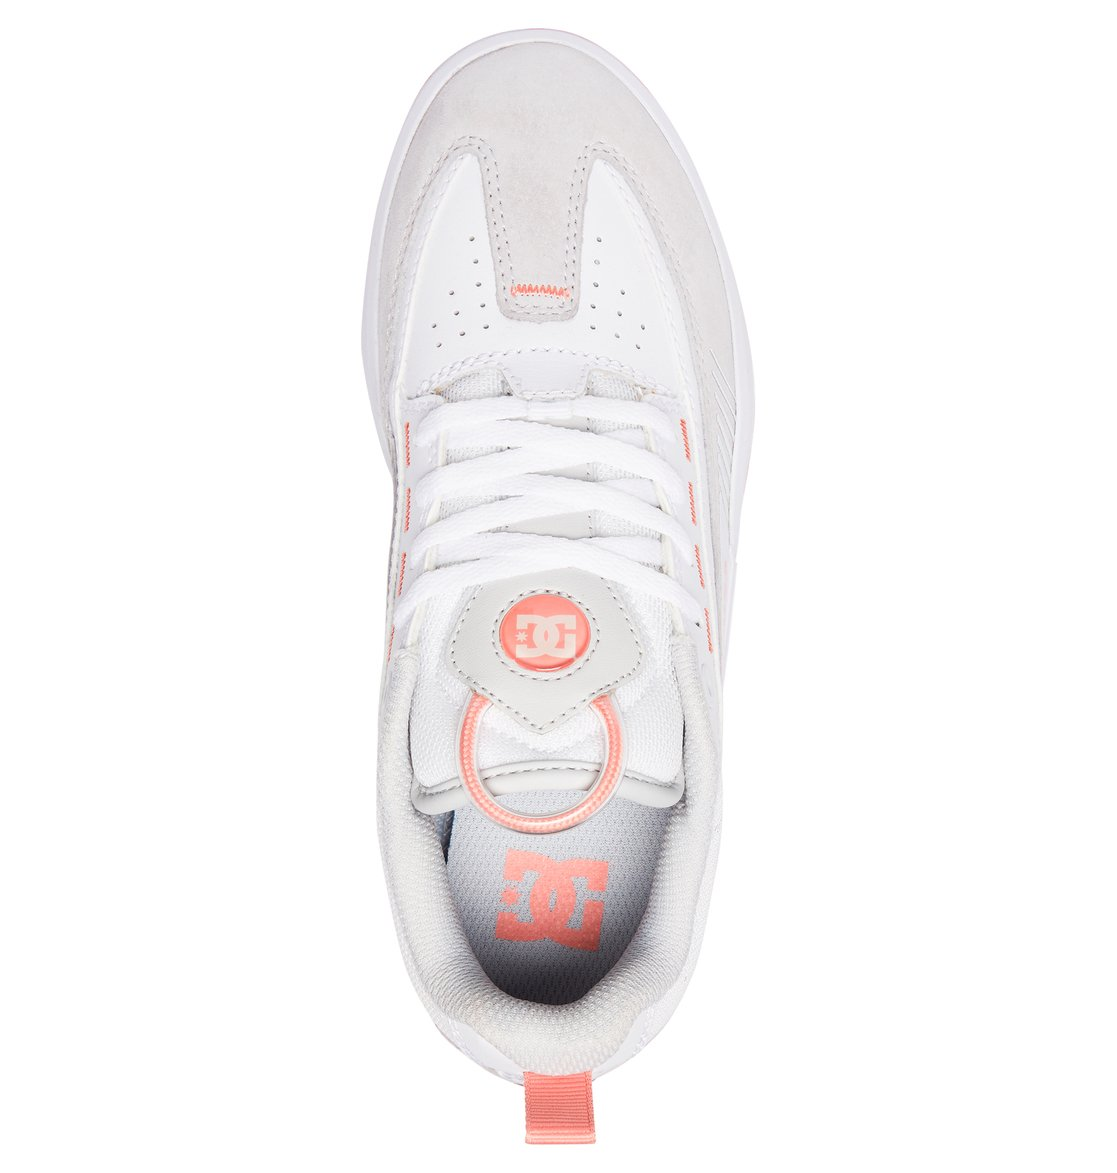 DC-Shoes-Legacy-98-Slim-Baskets-pour-Femme-ADJS200022 miniature 12